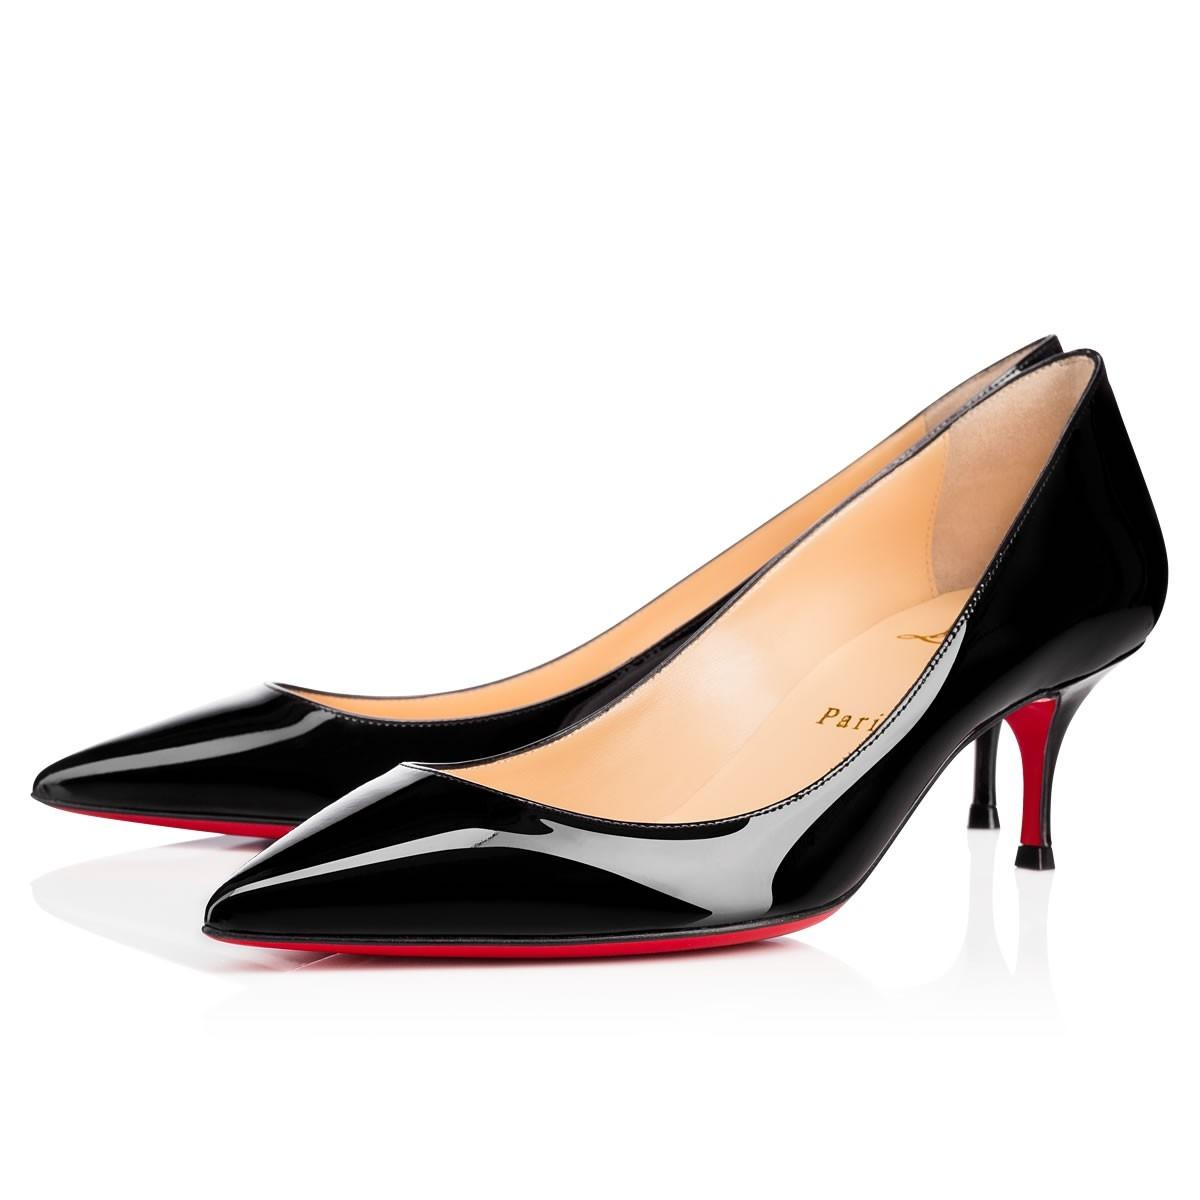 fa686338c9a8 Christian Louboutin Black Pigalle Pigalle Pigalle Follies 55 Patent Leather  Kitten Heel Pumps Size EU 36 (Approx. US 6) Regular (M